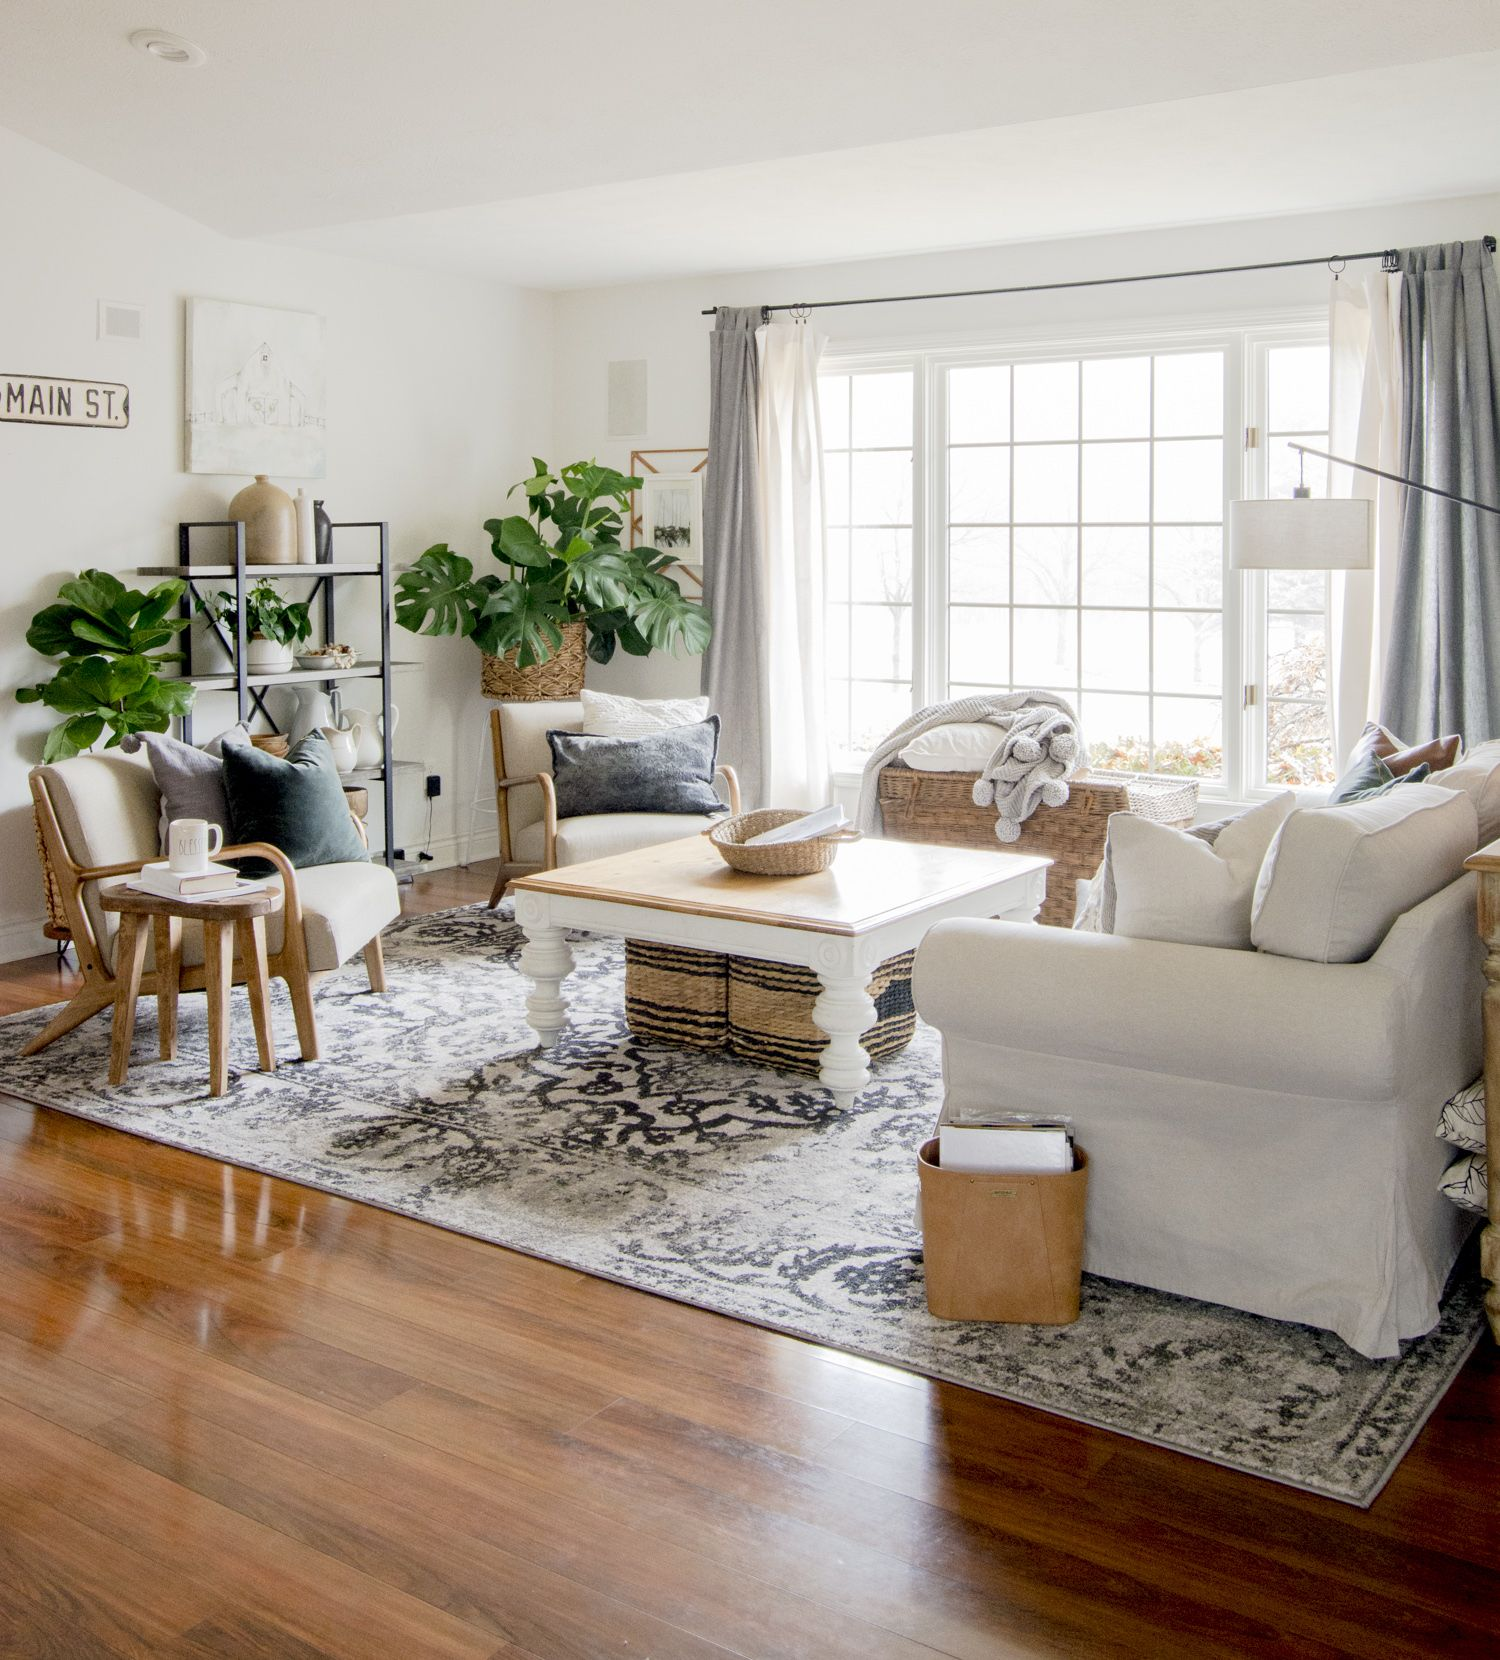 How To Create A Cozy Home With Layers In 2020 (With Images